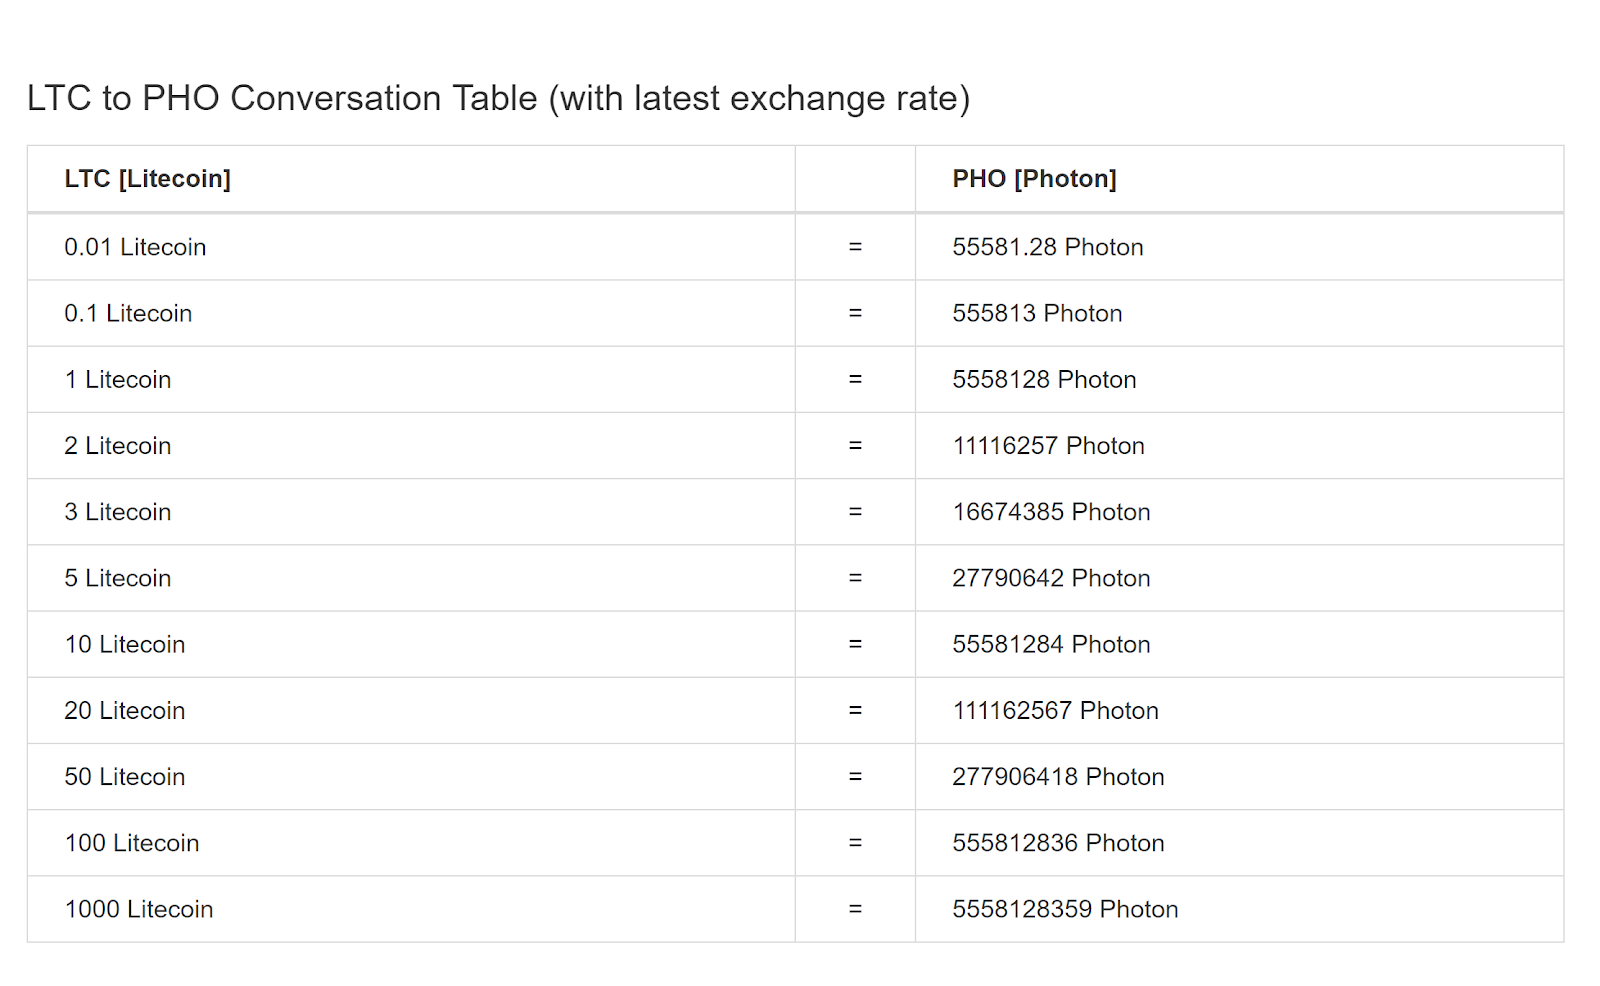 Litecoin to Photon conversion table